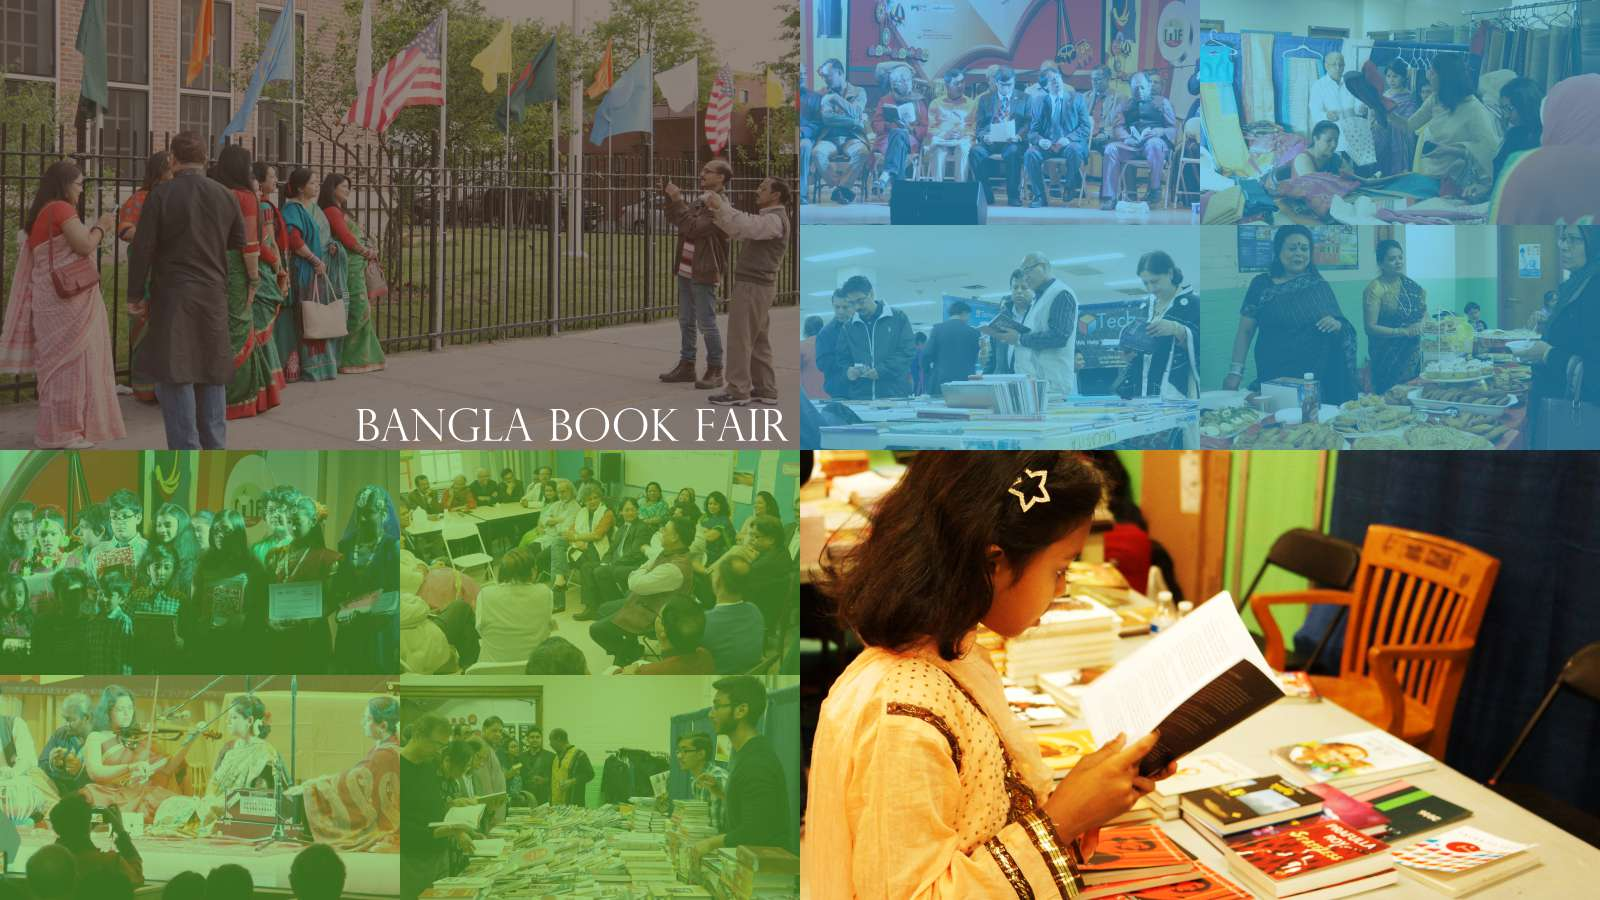 Book, Bangla and Bangladeshi community in New York